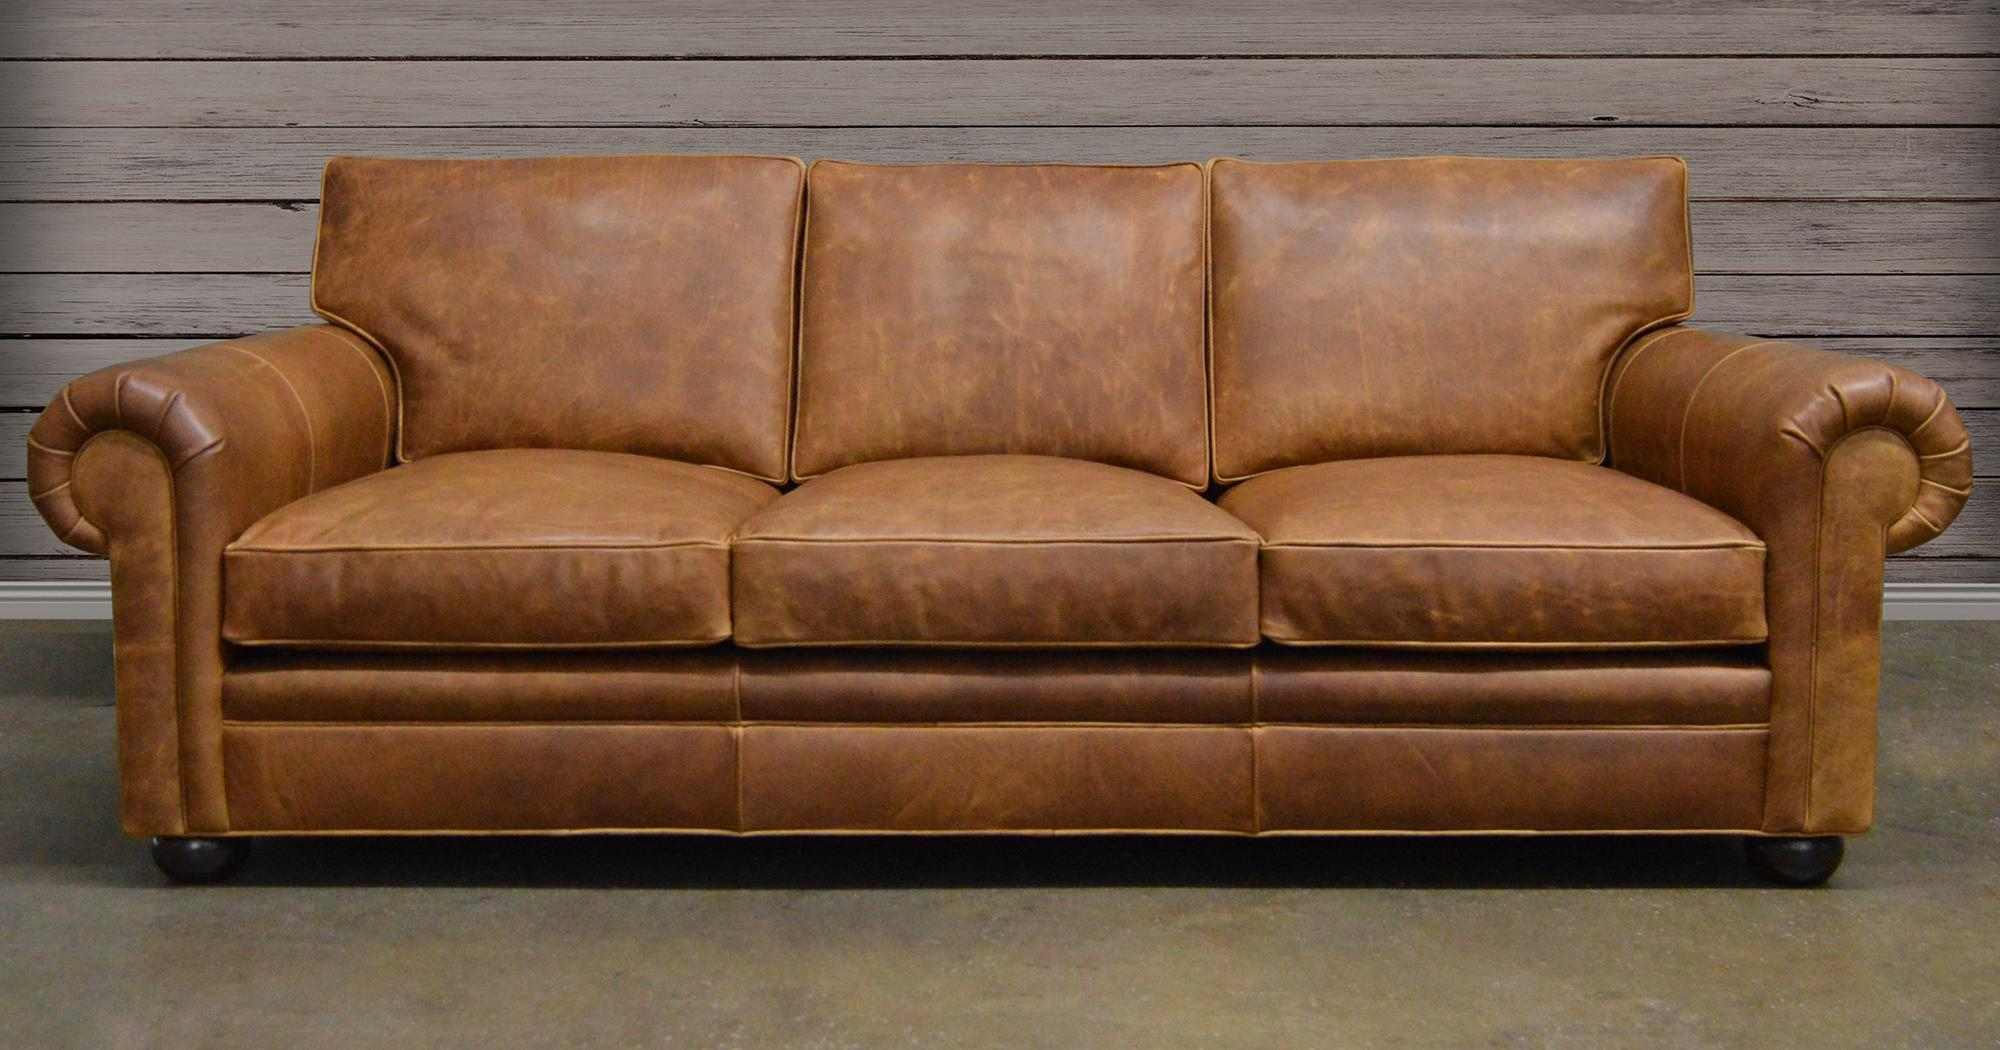 Furnitures: Classy Full Grain Leather Sofa For Luxury Living Room With Aniline Leather Sofas (View 11 of 20)